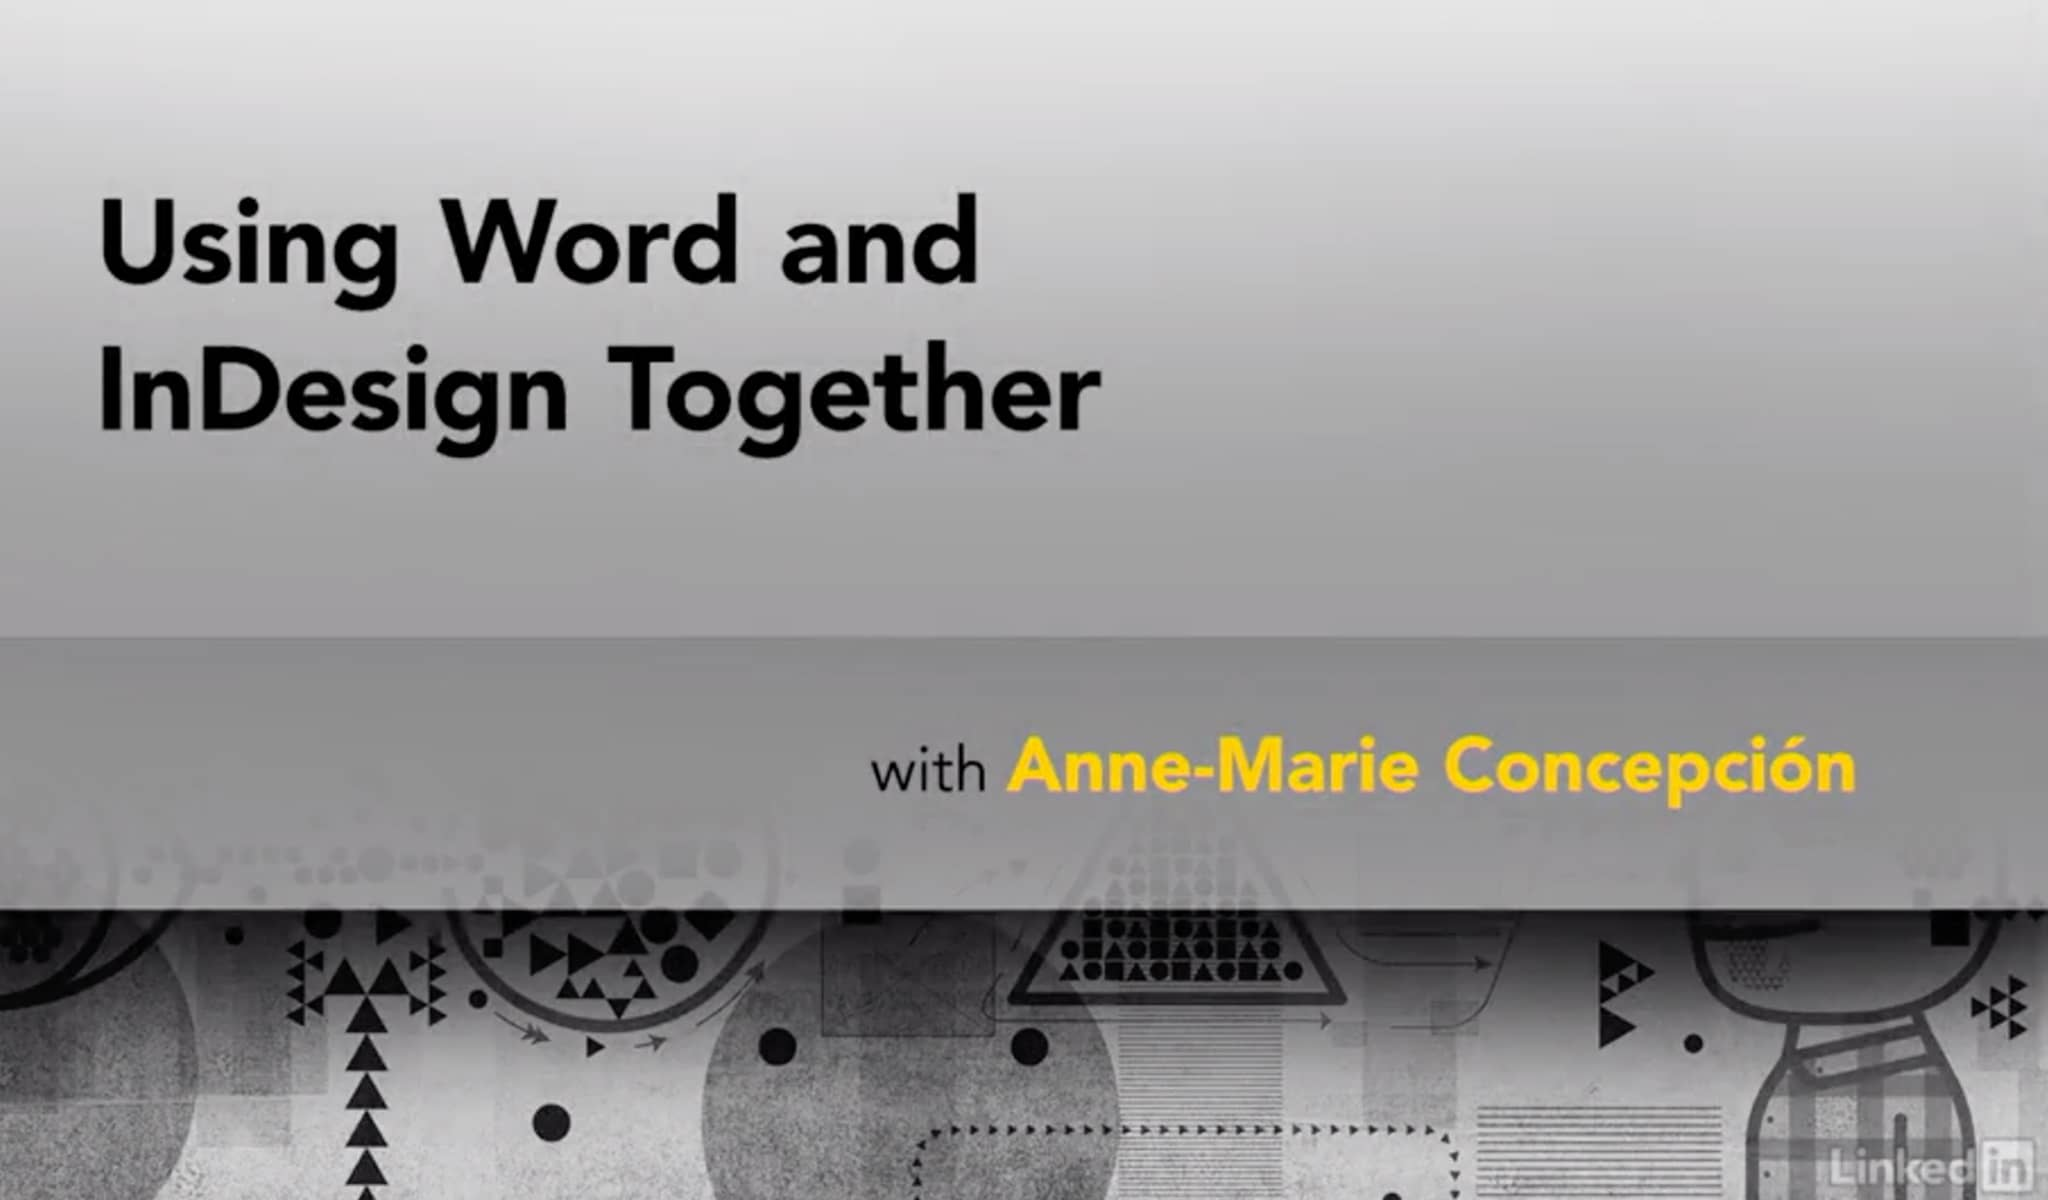 Word and InDesign: Integration by Anne-Marie Concepción